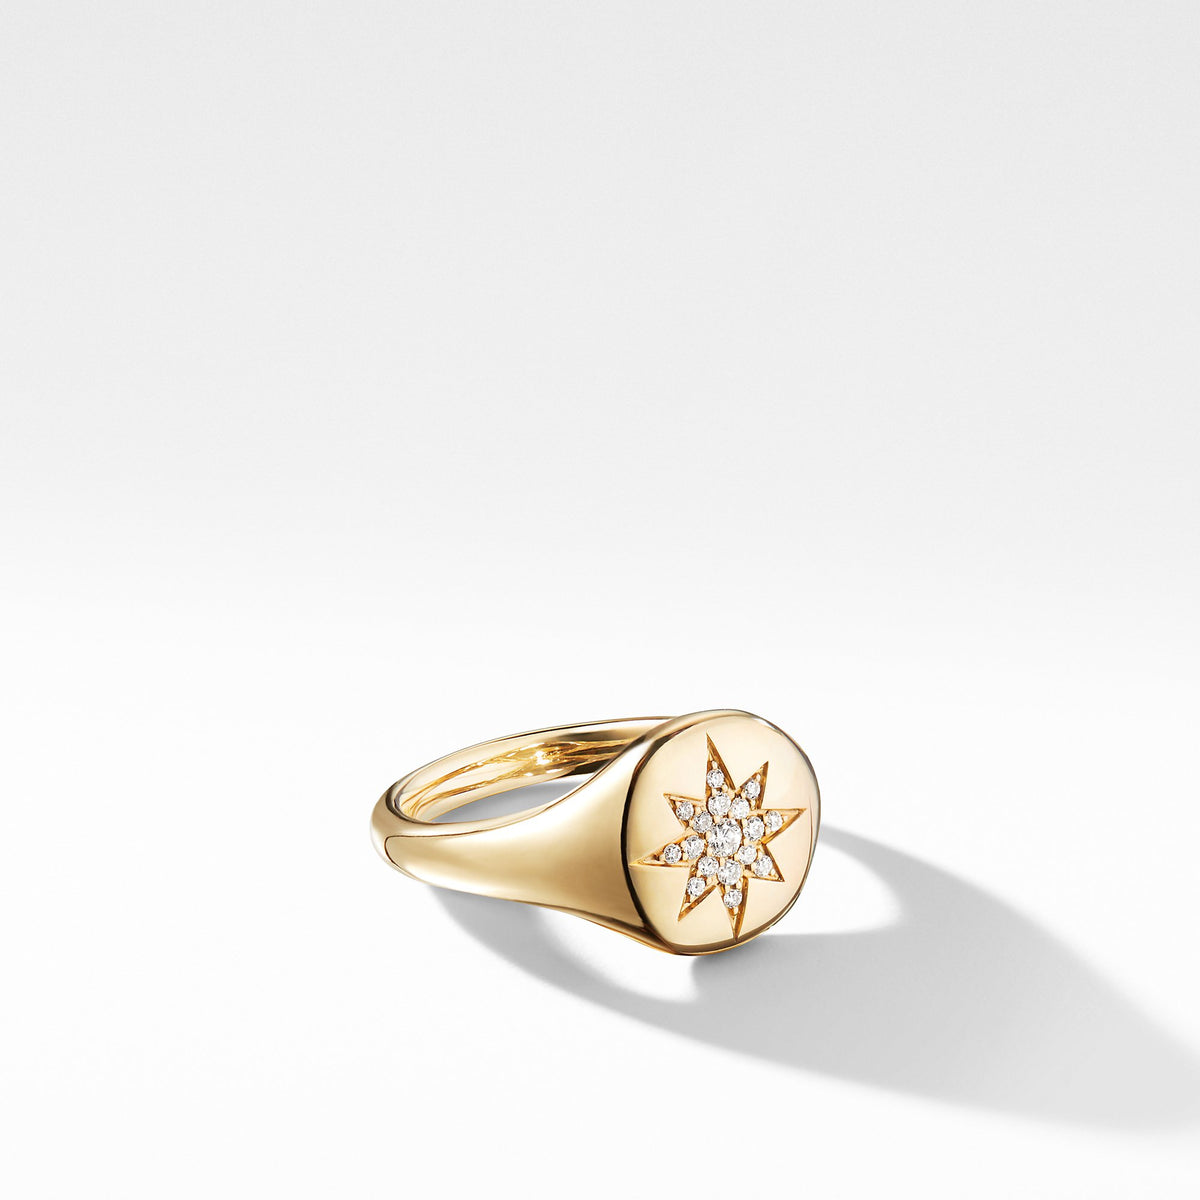 Cable Collectibles Compass Mini Pinky Ring in 18K Gold with Diamonds